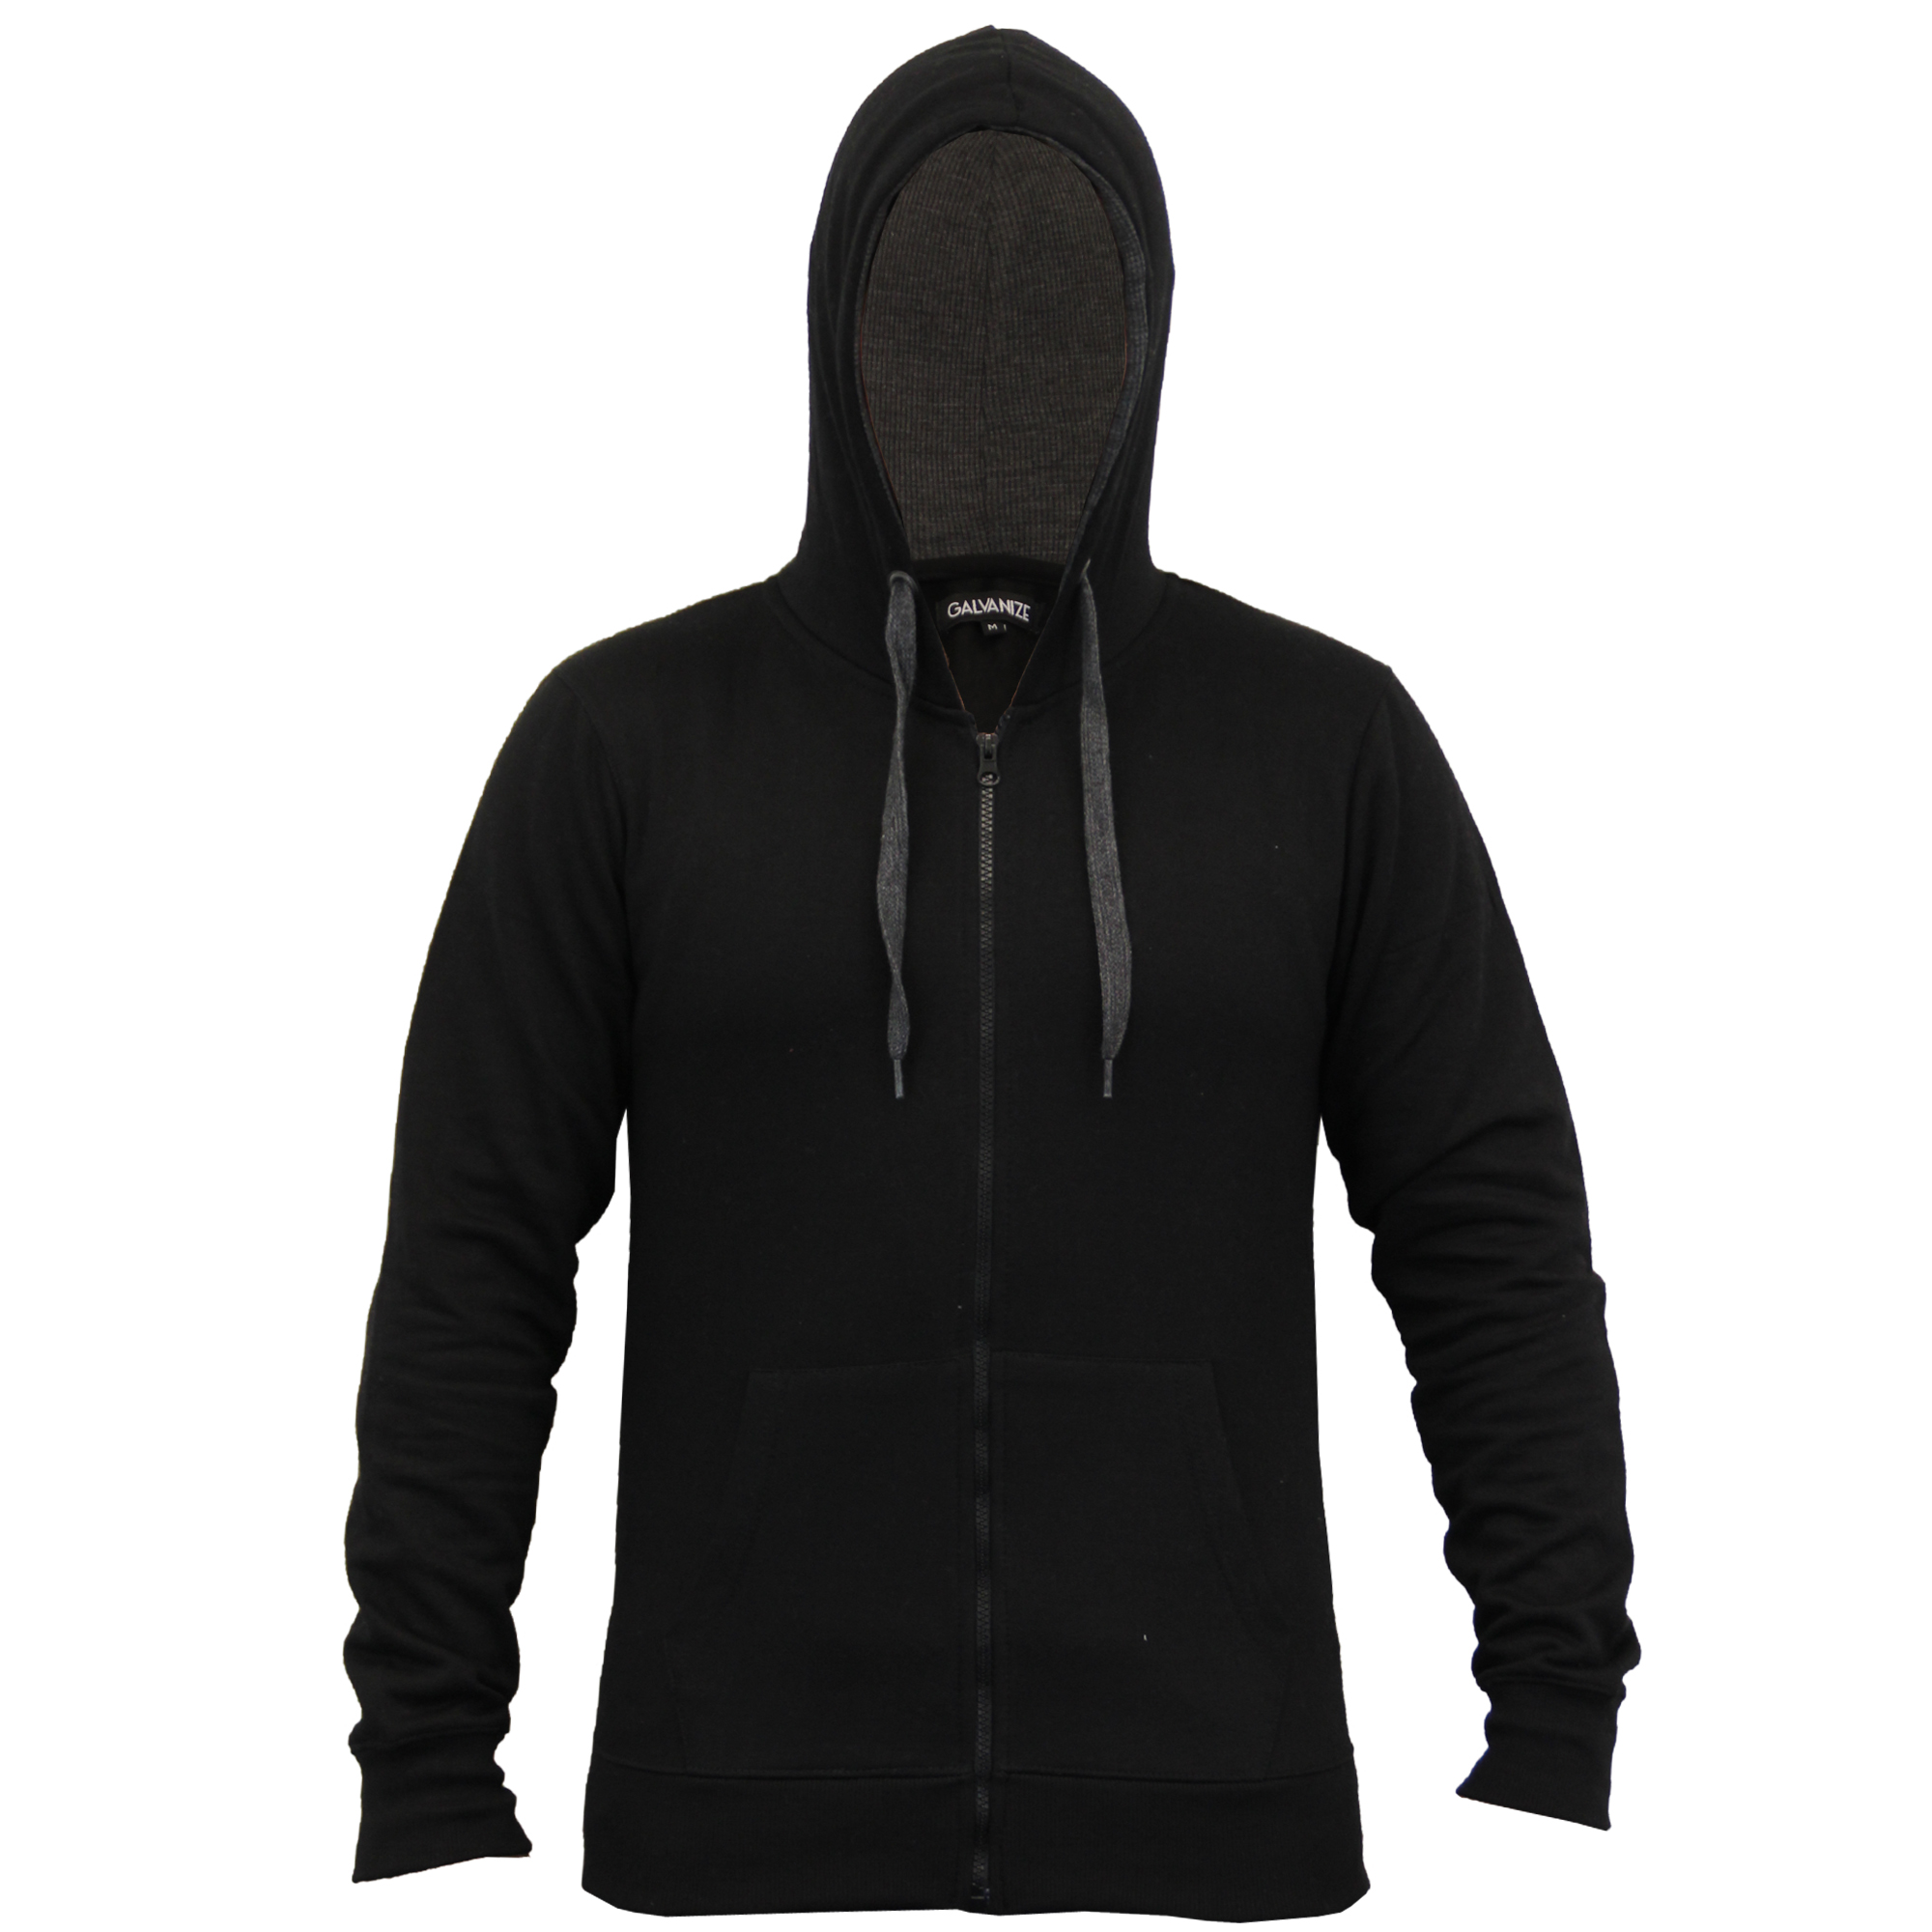 Mens-Diamond-Quilted-Hooded-Top-Fleece-Lined-Sweatshirt-By-Galvanize thumbnail 3